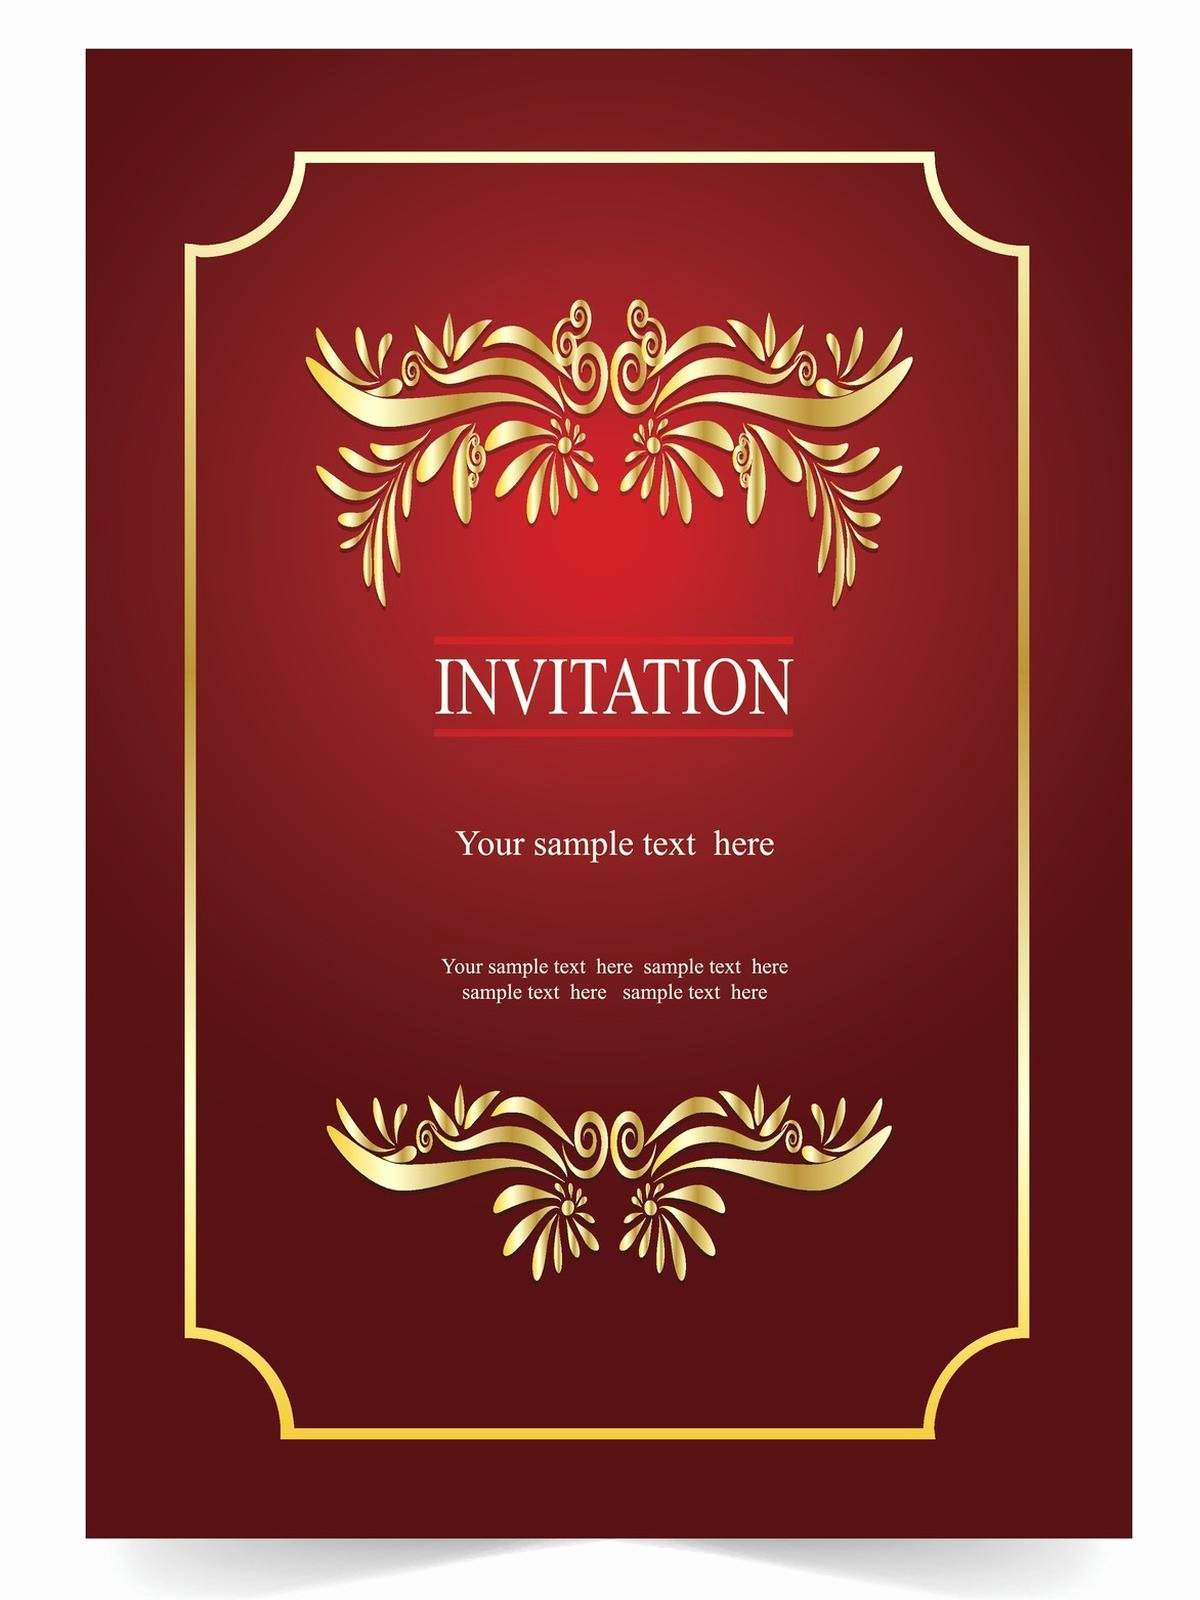 Goodbye Party Invitation Wording Best Of 10 Farewell Party Invitation Wordings to Bid Goodbye In Style